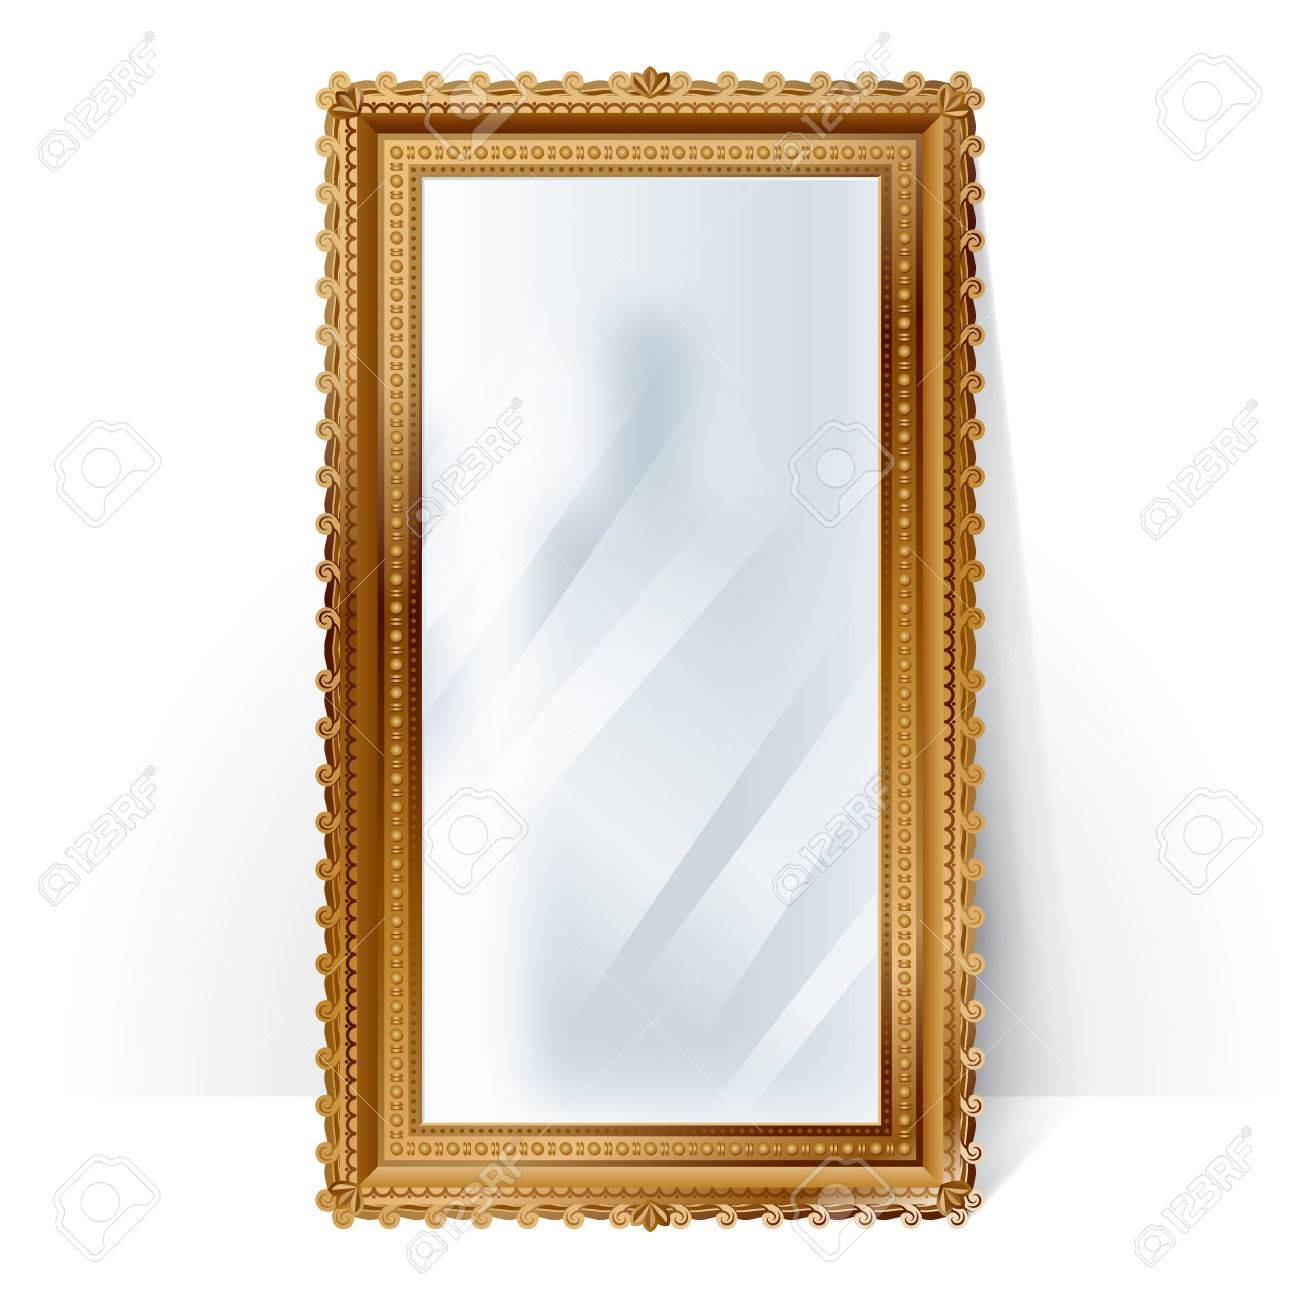 Big Mirror In Vintage Golden Frame With Blurry Reflection, Standing ...